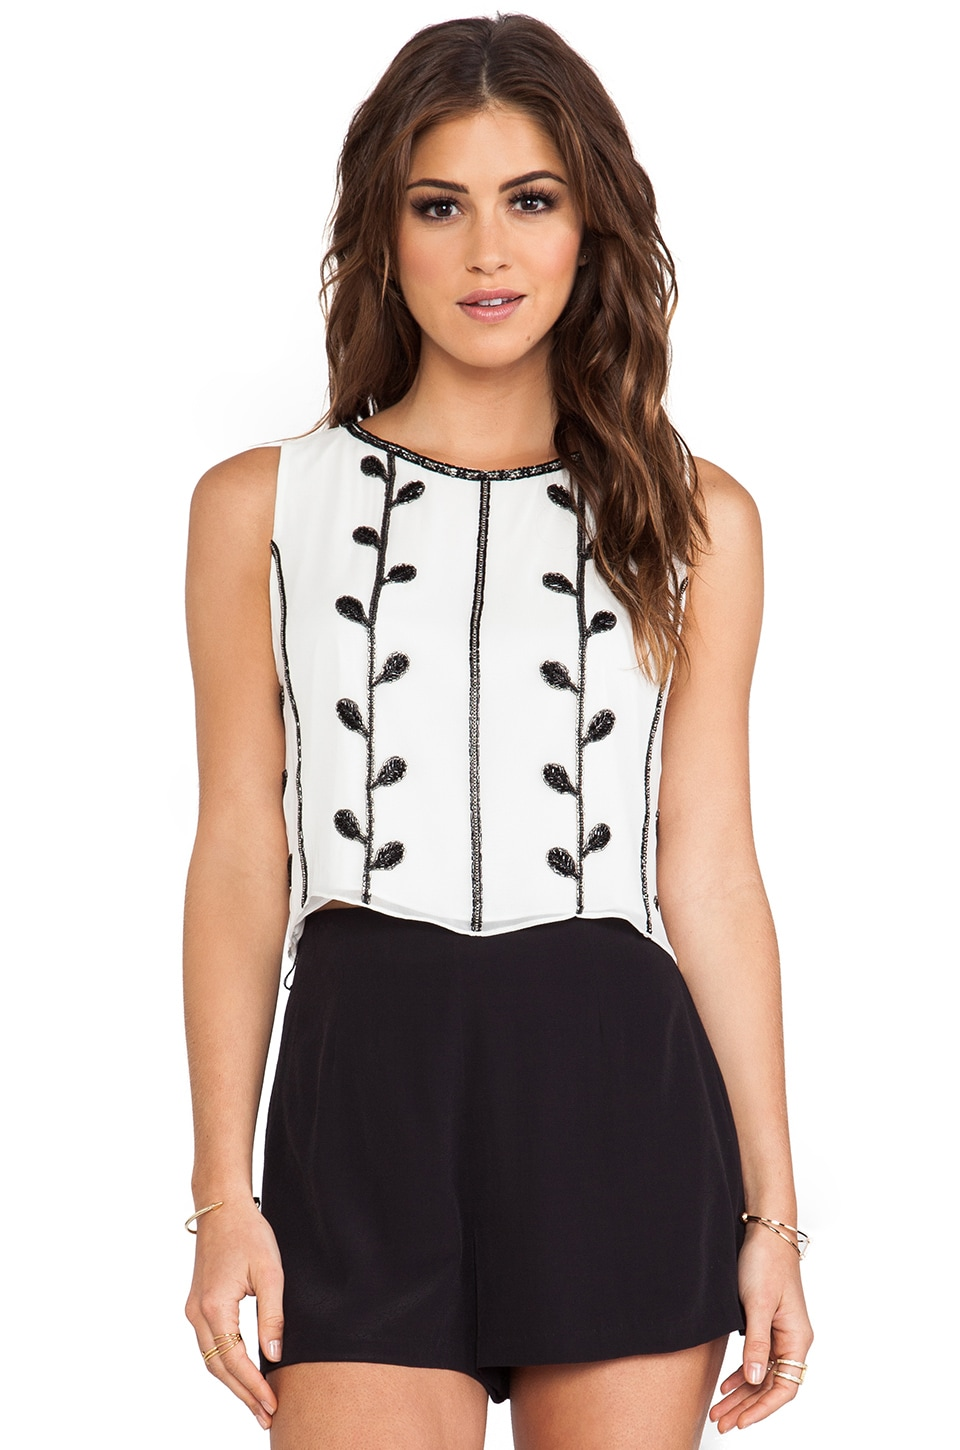 Alice + Olivia Tiara Embellished Tank in White & Black